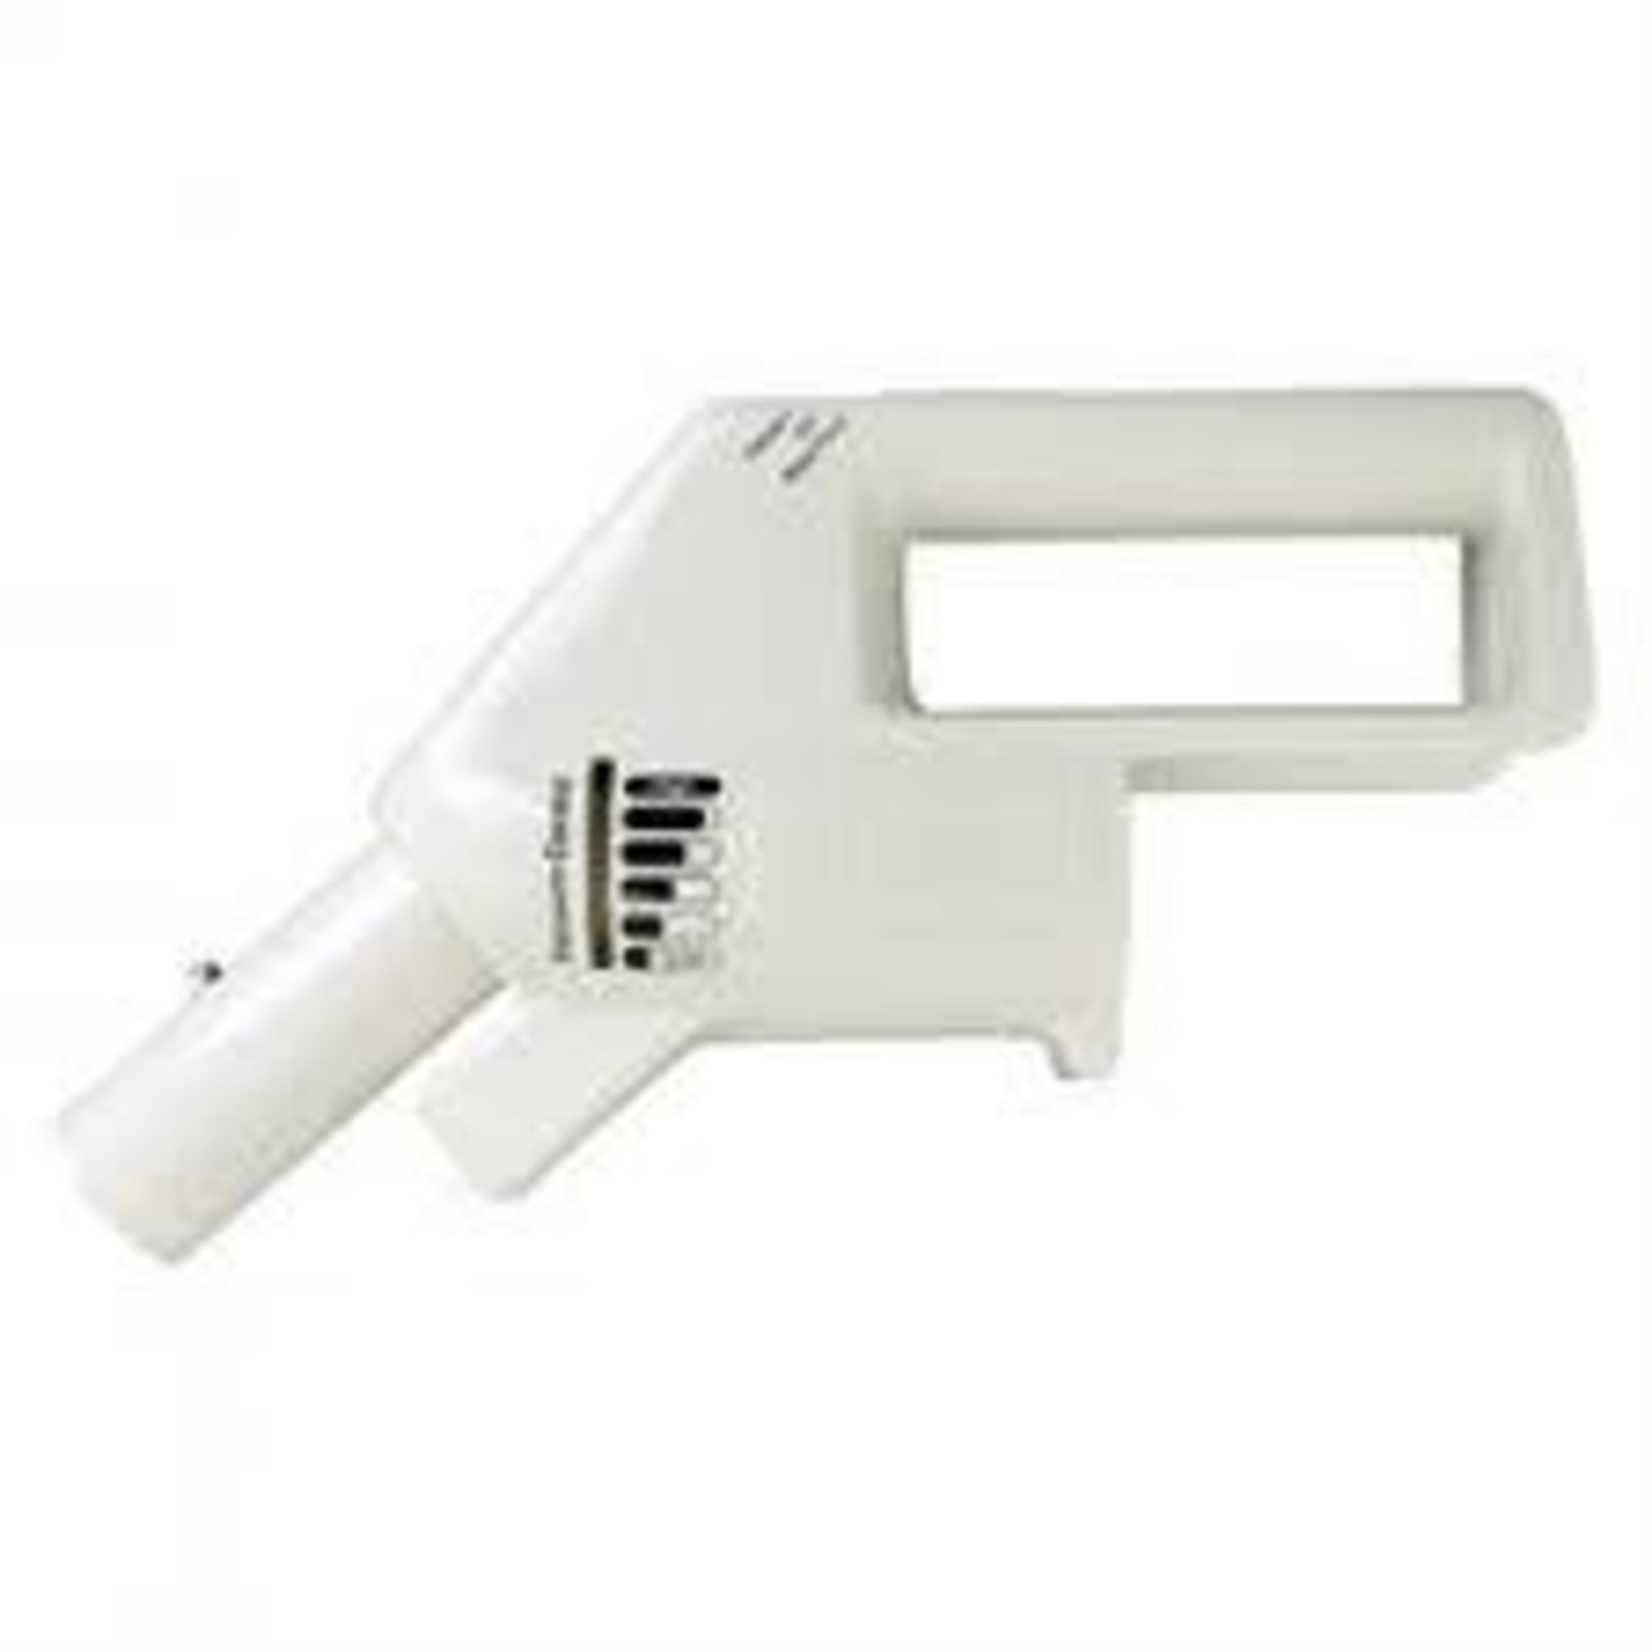 Electrolux CVS Total Control Handle - Non Swivel - White